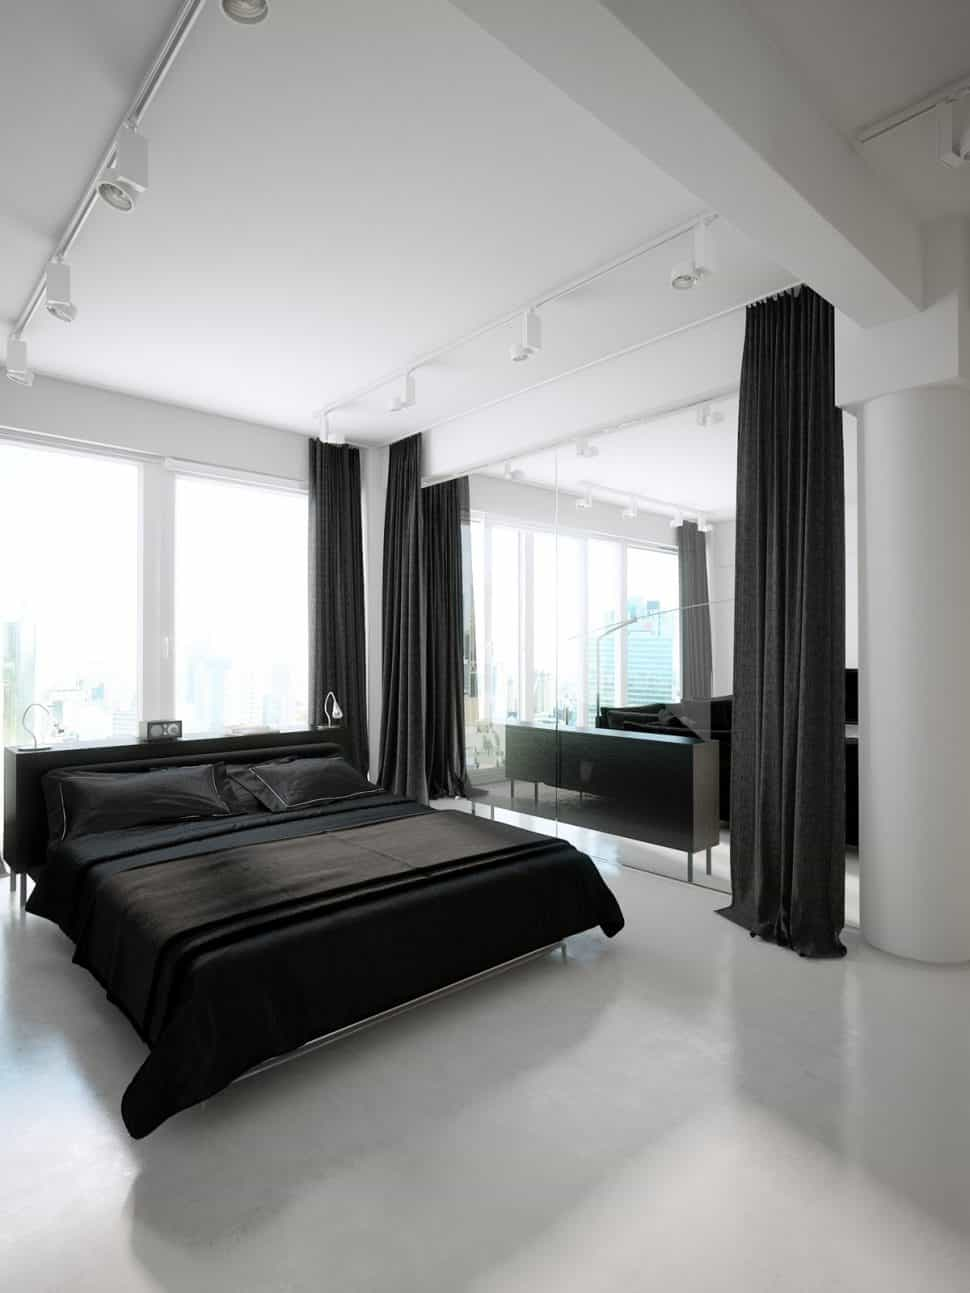 minimal bedroom with black bed and curtains